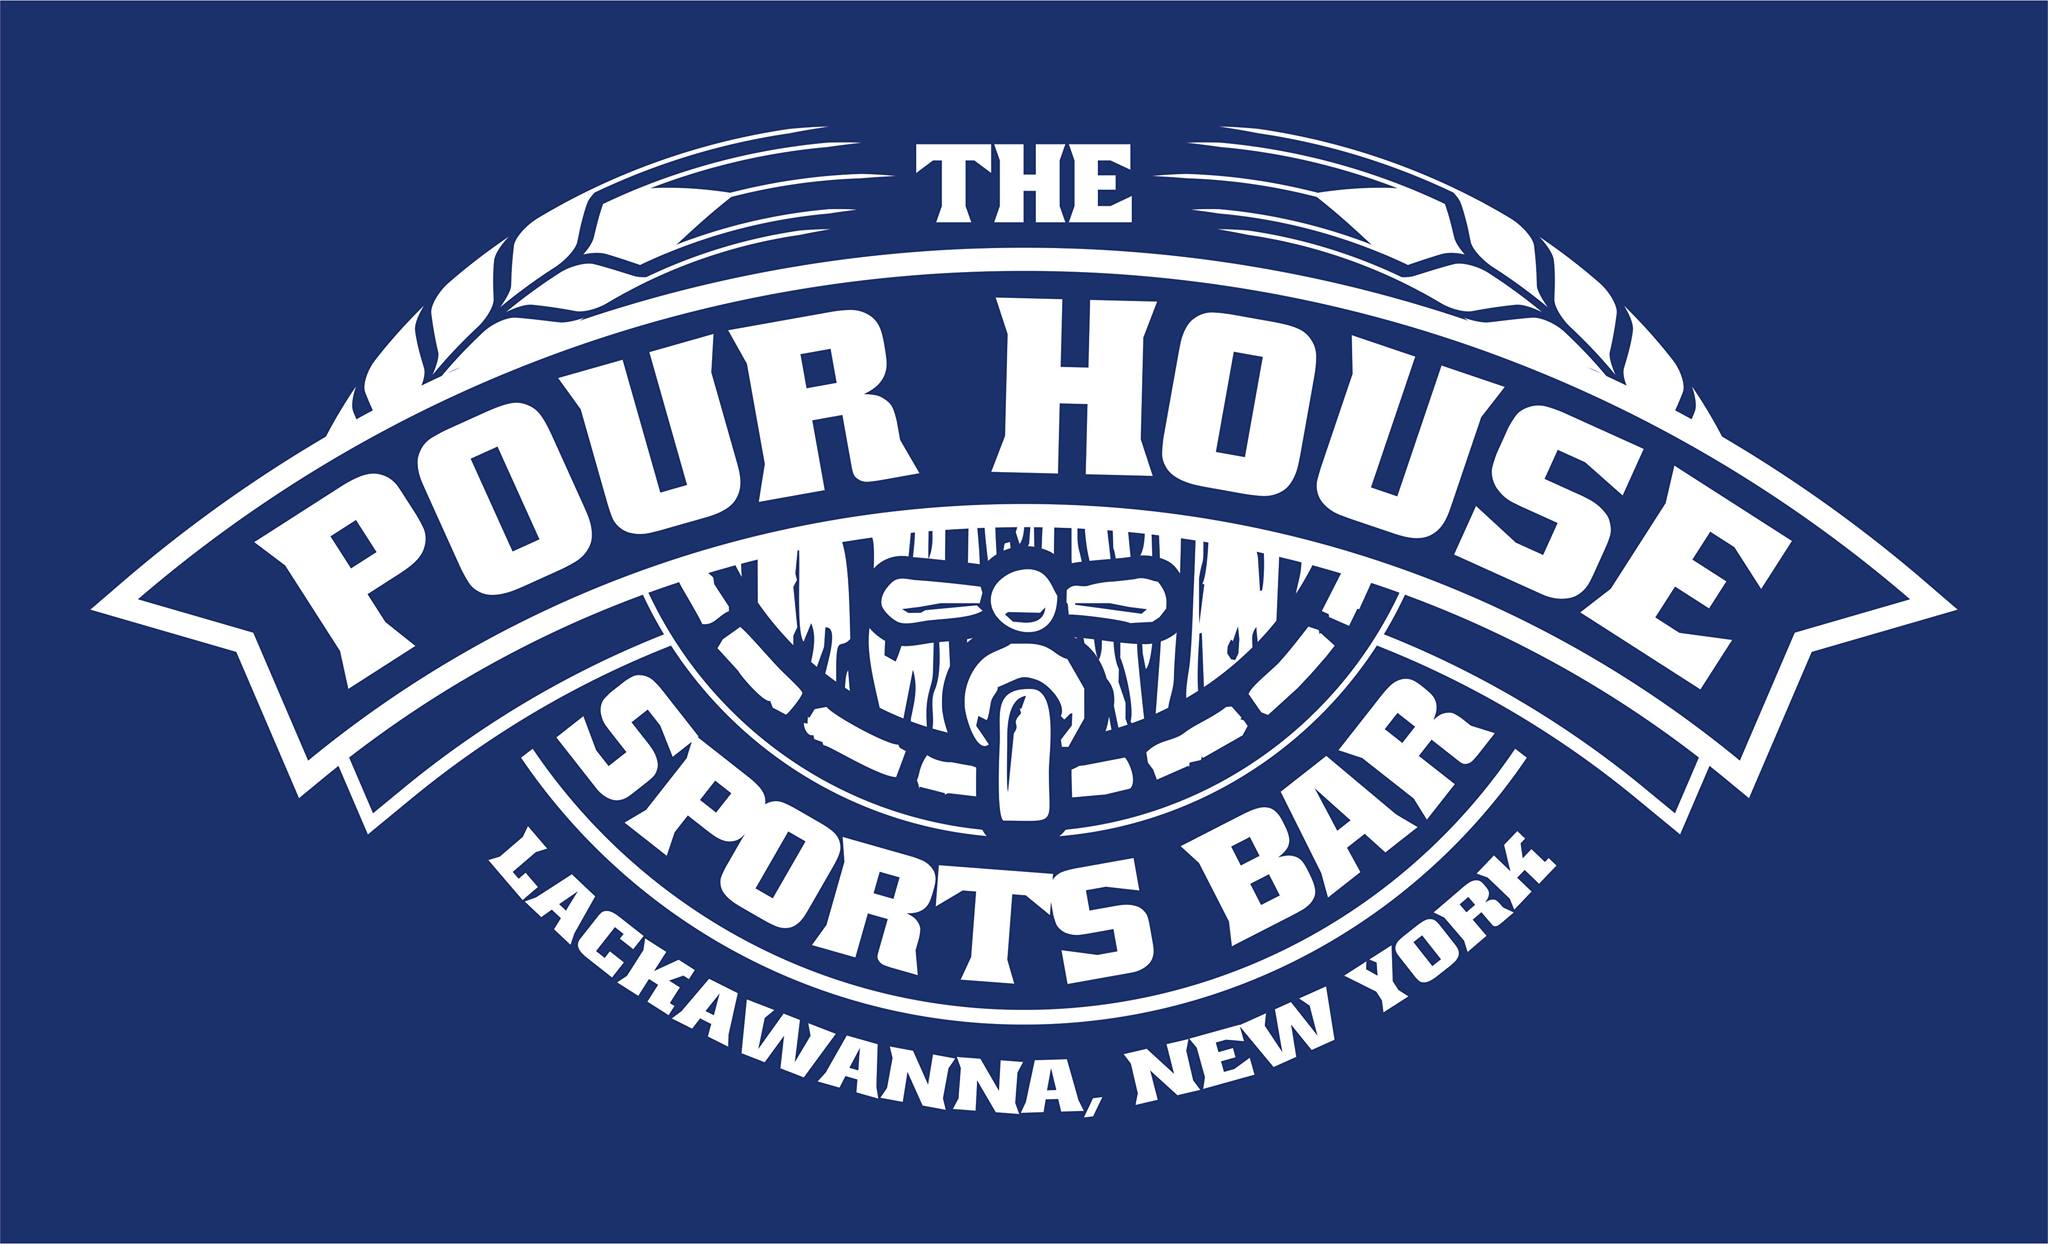 The Pour House Sports Bar of Lackawanna